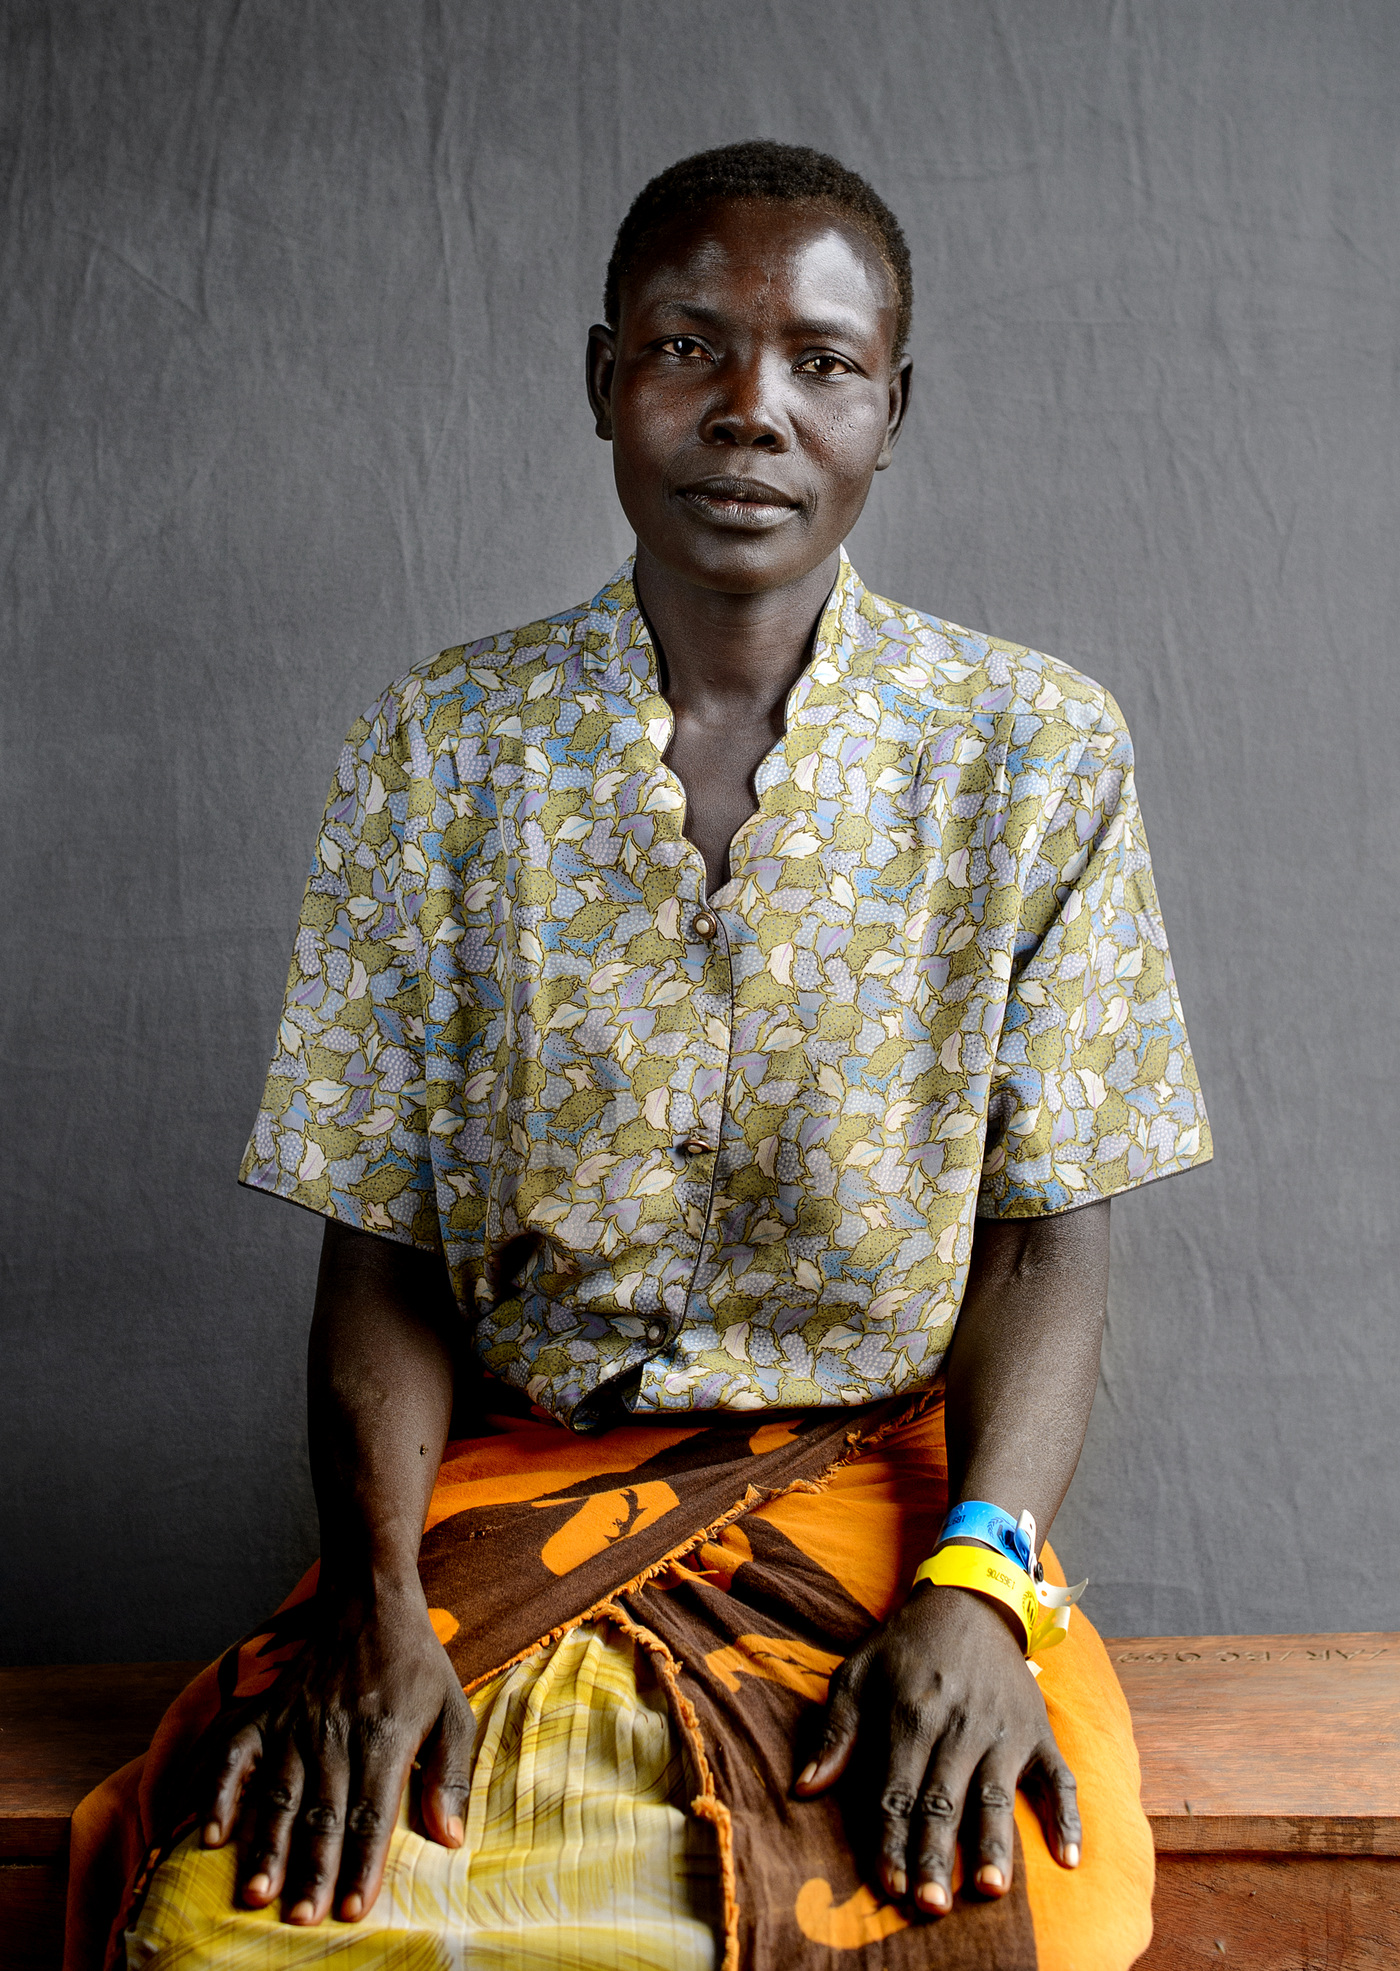 John T. Pedersen Photography - Katerina Kadi (45)   My husband was killed by the government soldiers when he was going to bring some food from our garden. He was accused of being a rebel, something he failed to disprove. They cut over his throat   My hope and desire is to settle with my children here in Uganda.     Katerina walked eigth days with her four children from the village of Wugi.